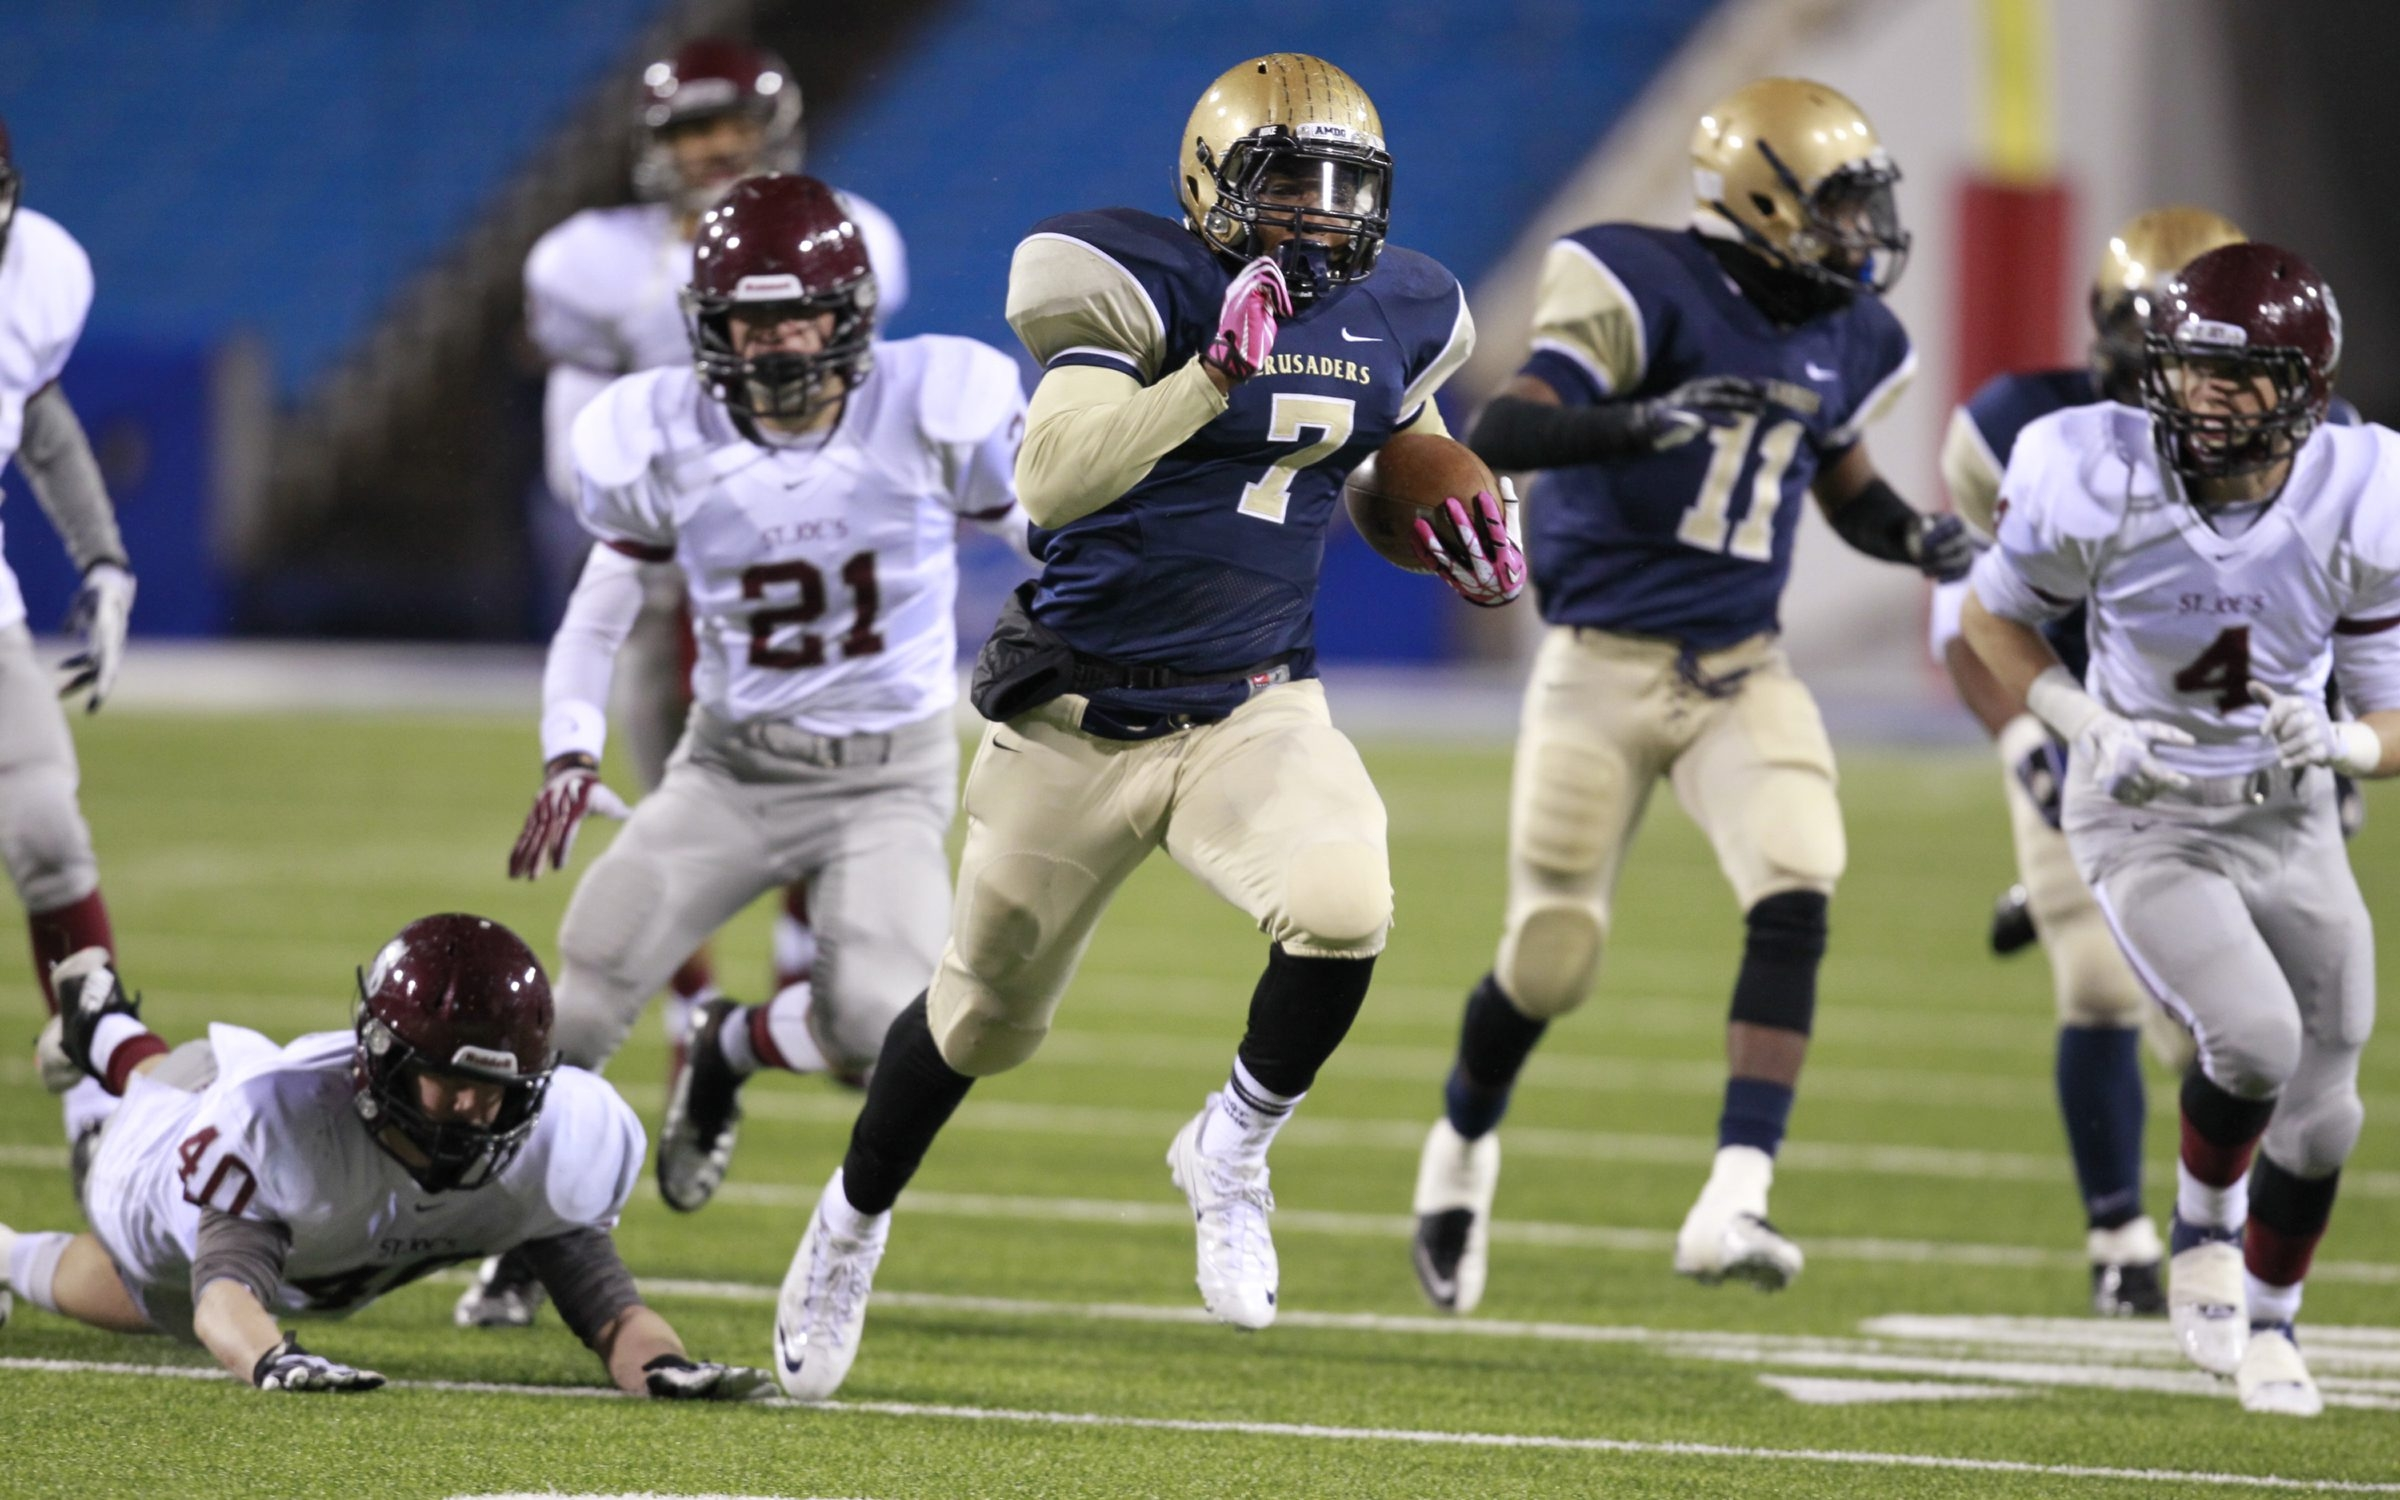 Canisius running back Qadree Ollison runs through St. Joe's defenders for a second-quarter touchdown. Ollison finished with five touchdowns and 240 yards on 20 carries.